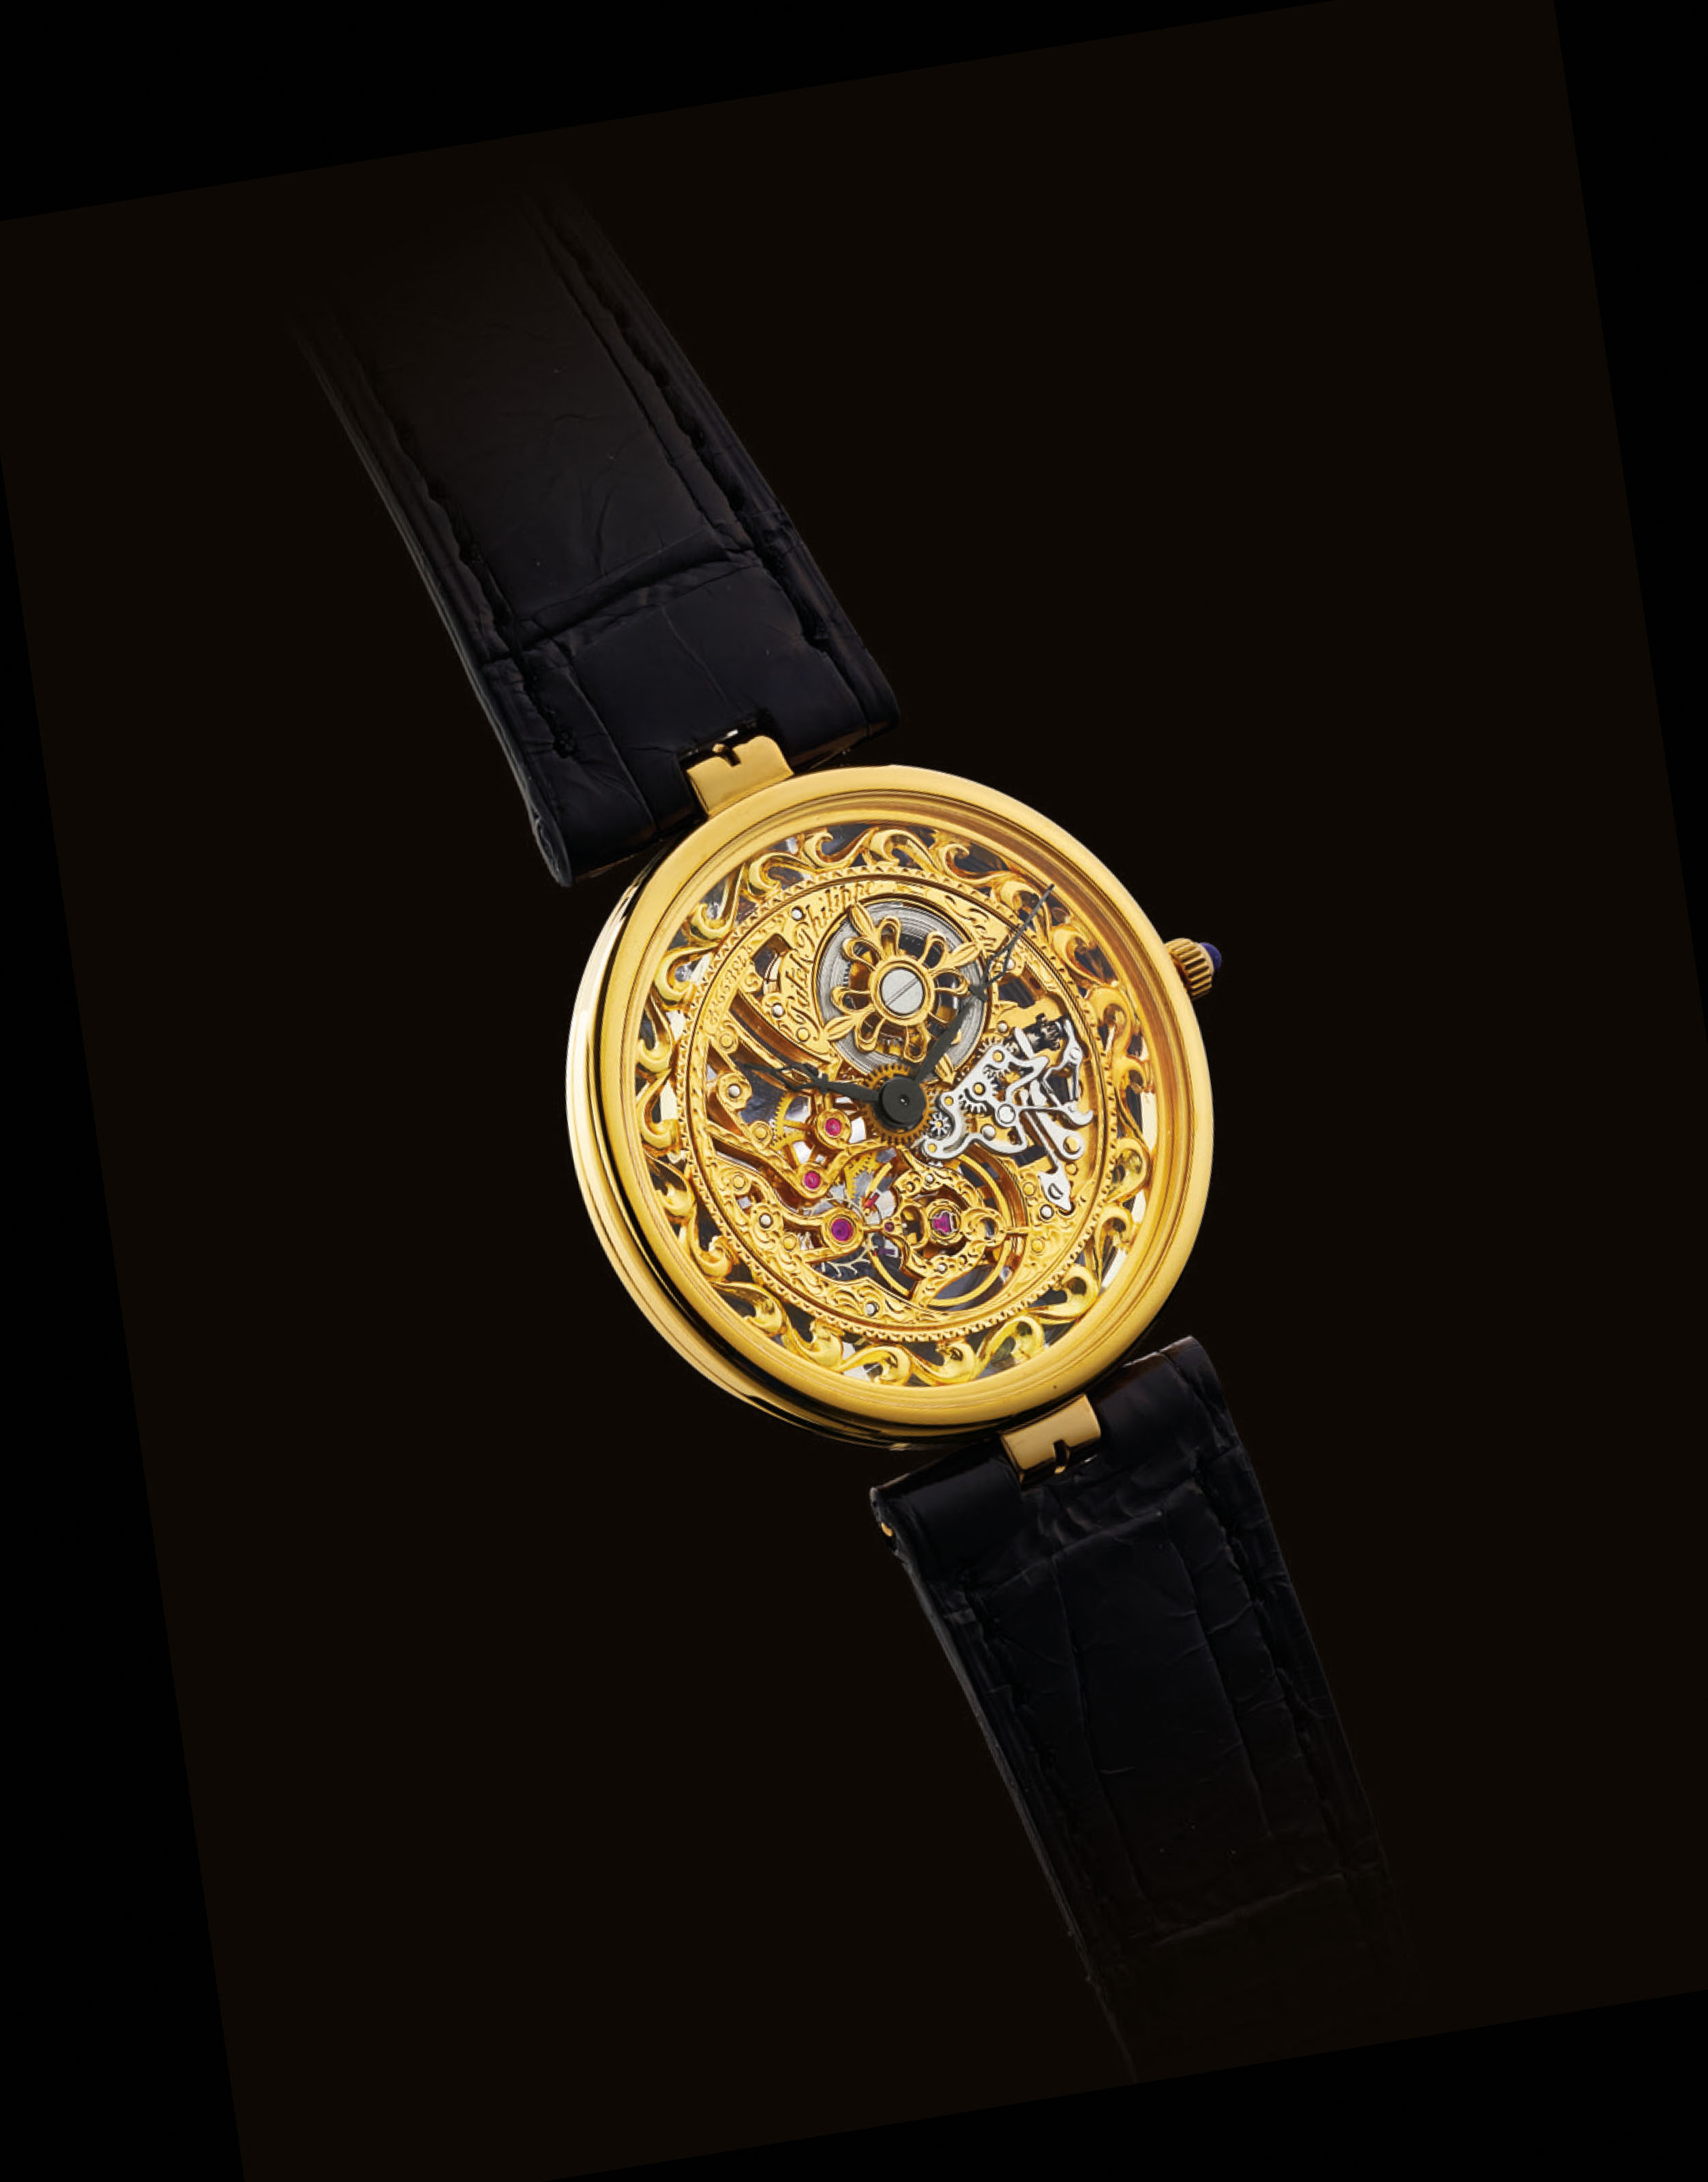 PATEK PHILIPPE. A FINE AND RARE 18K GOLD SKELETONISED WRISTWATCH